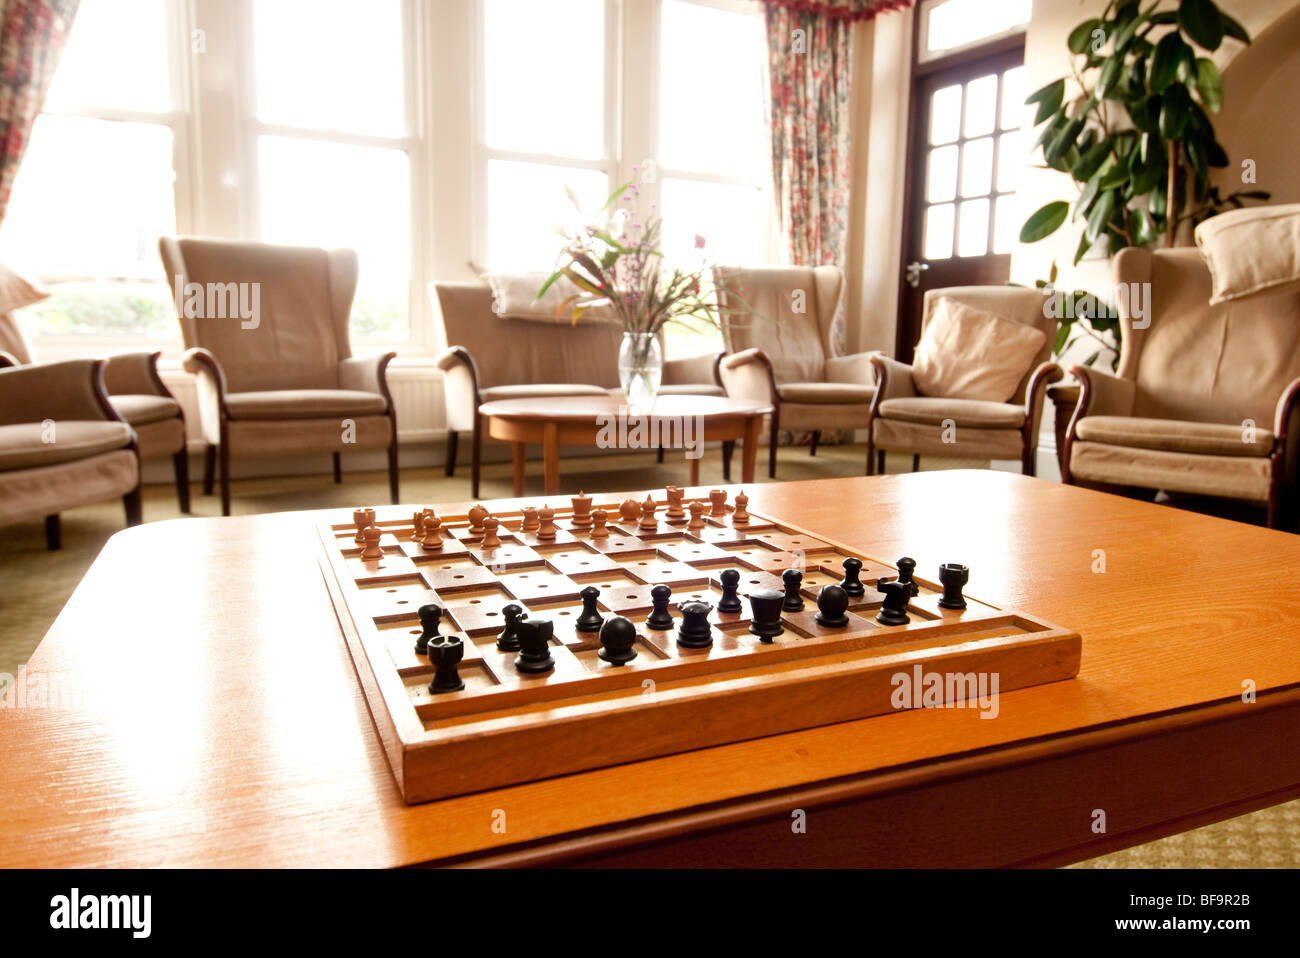 Chess Set On A Table In Living Room